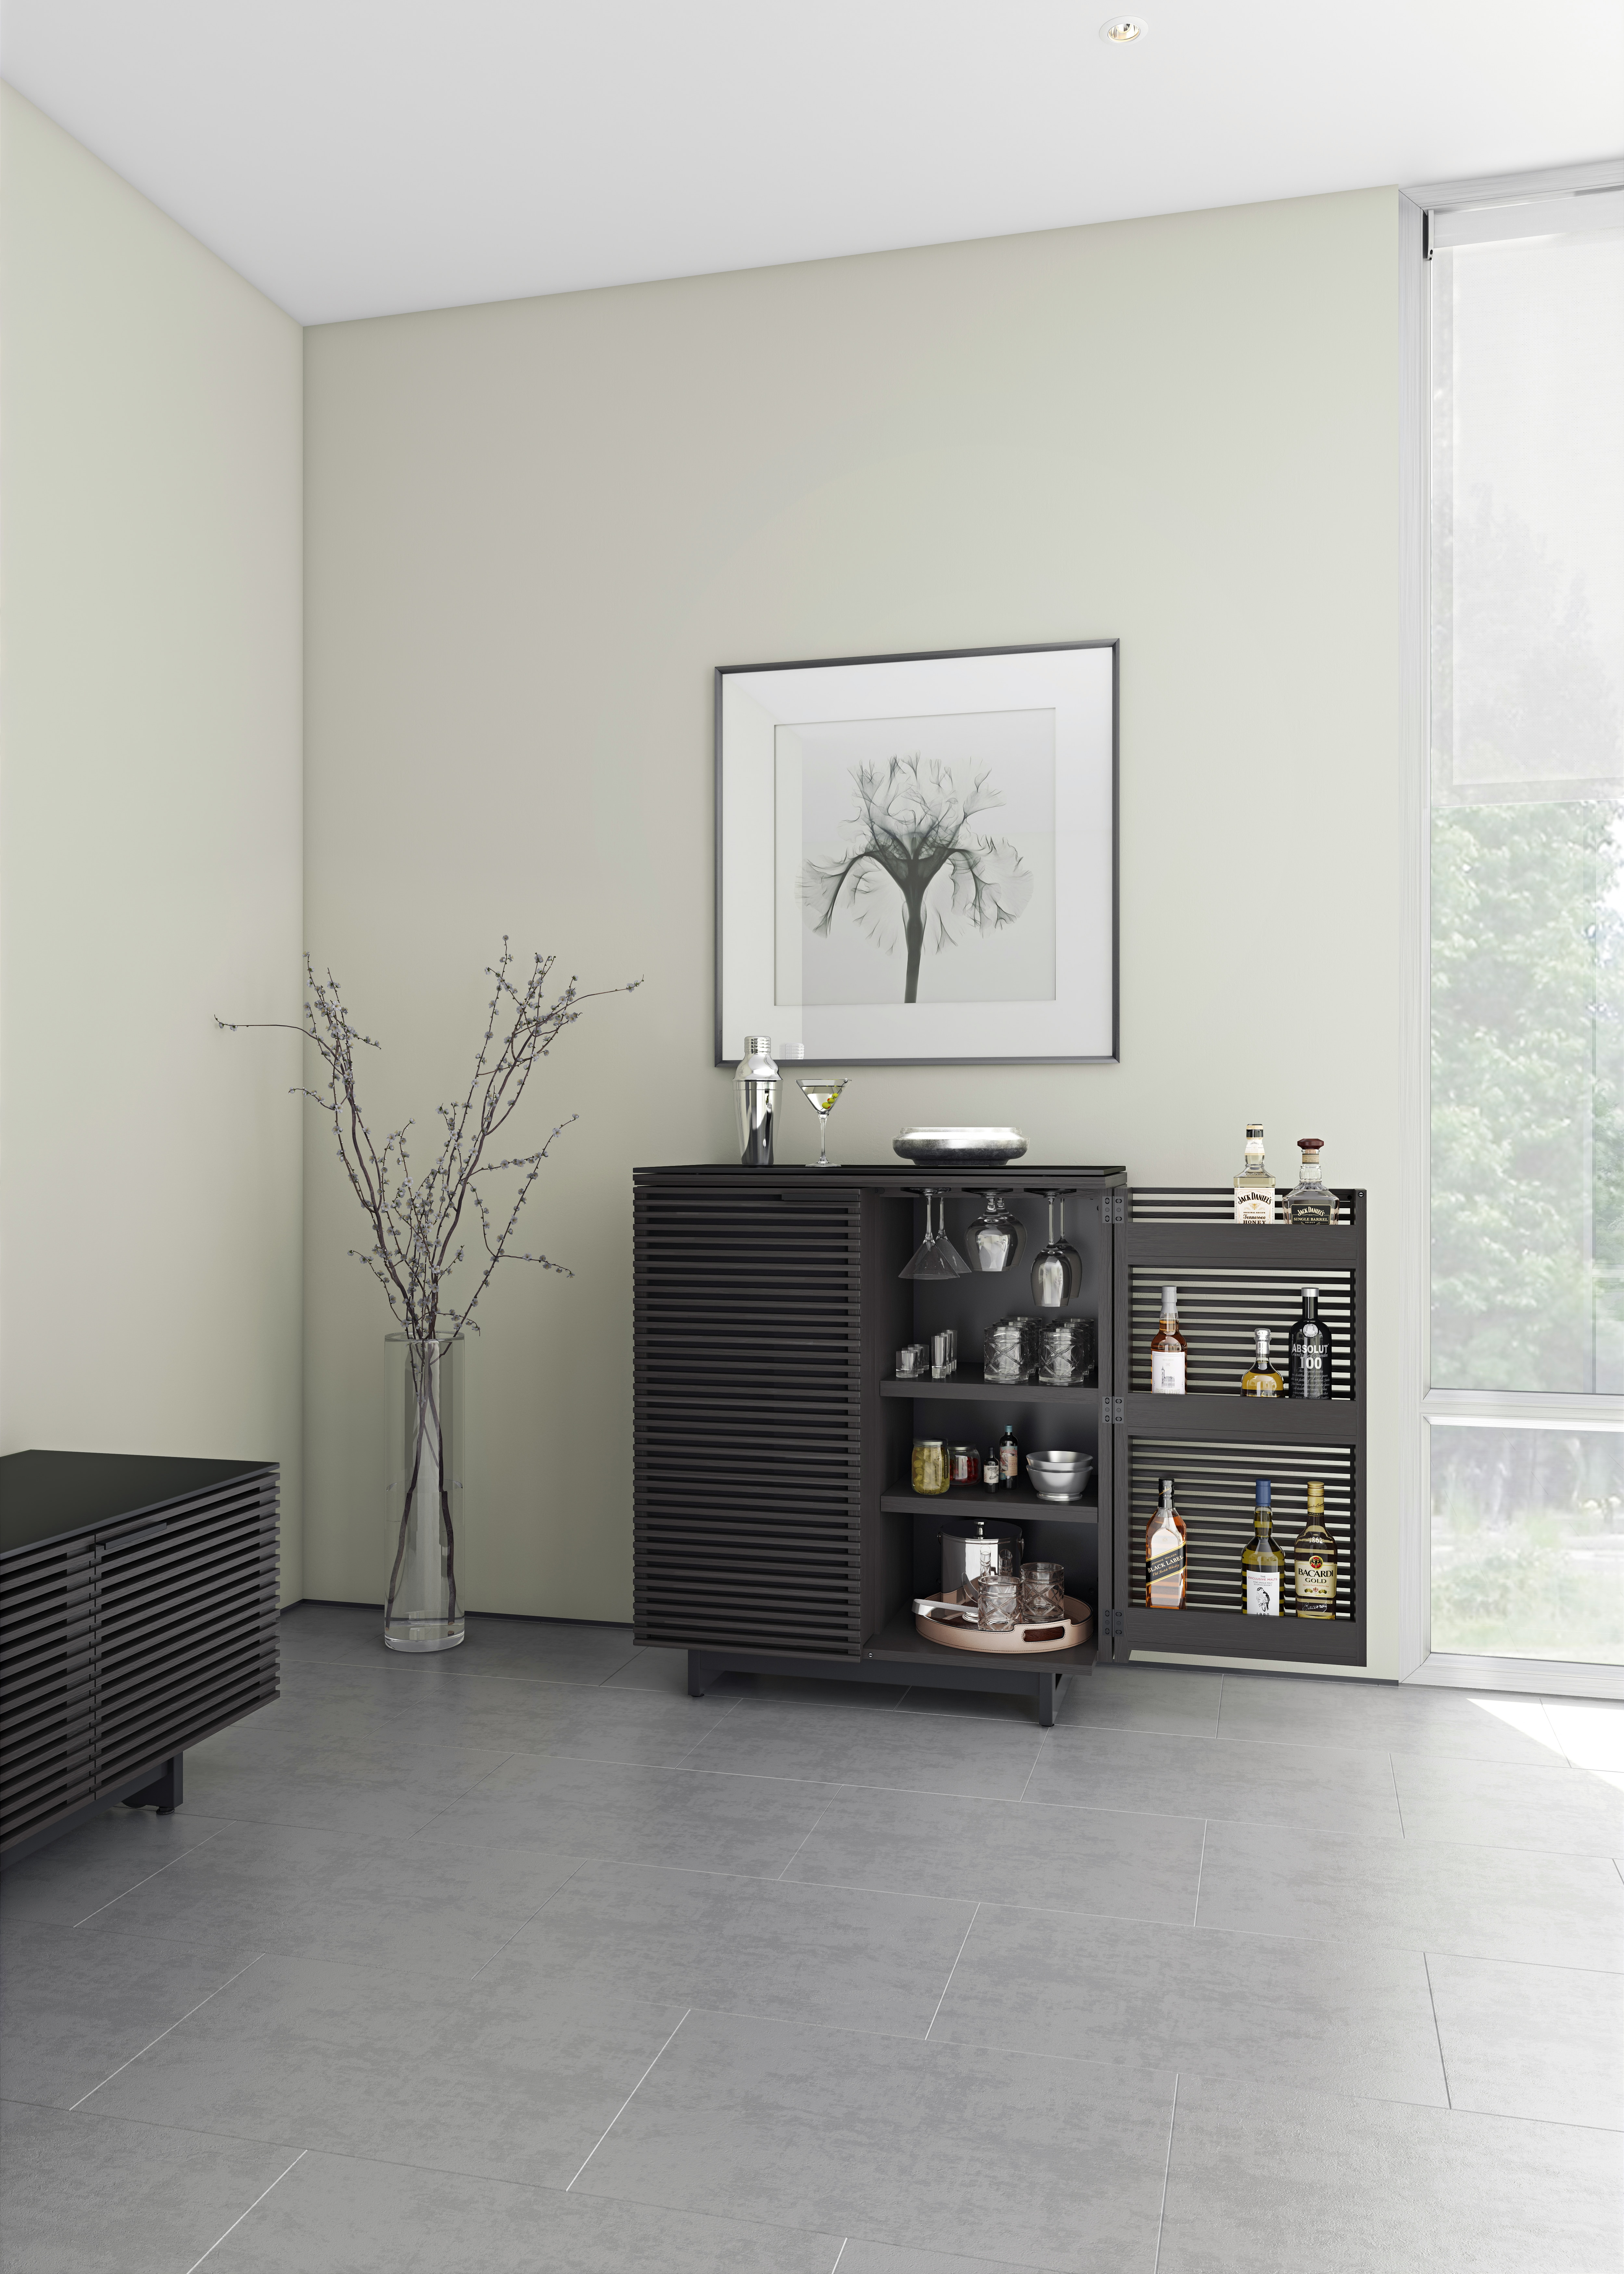 corridor-bar-5620-home-bar-charcoal-BDI-5